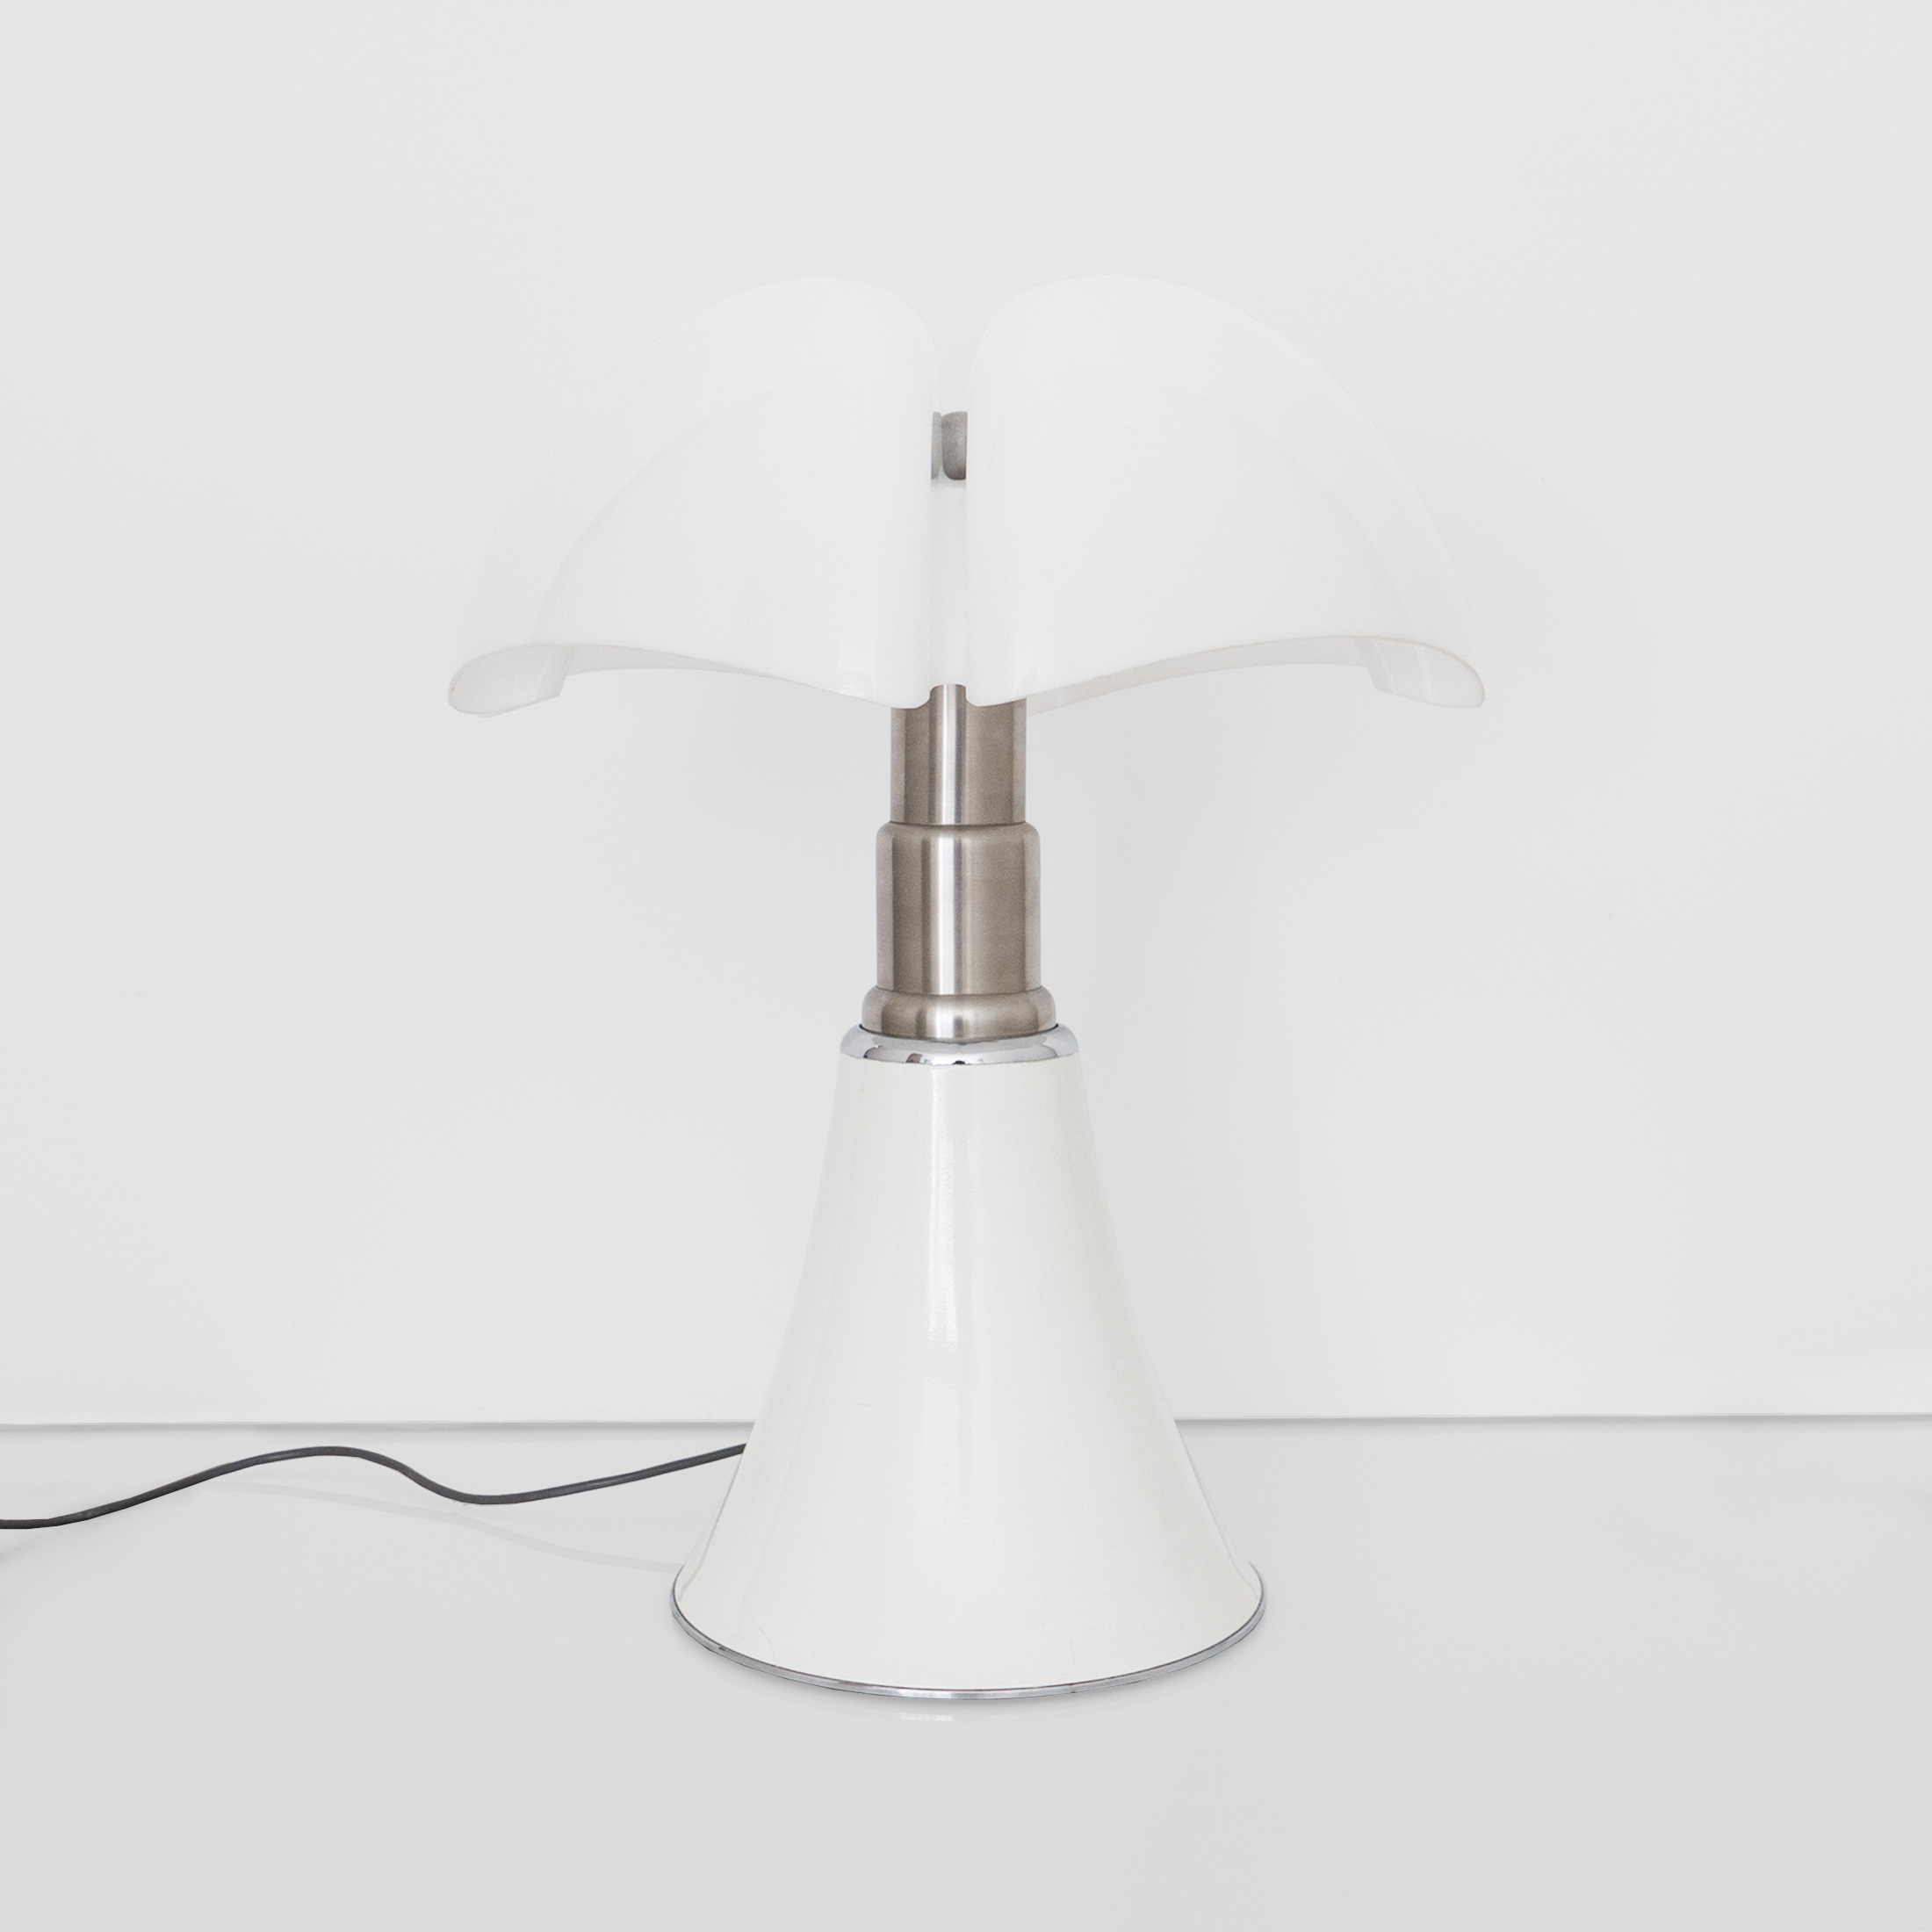 gae aulenti pipistrello table lamp $3,500